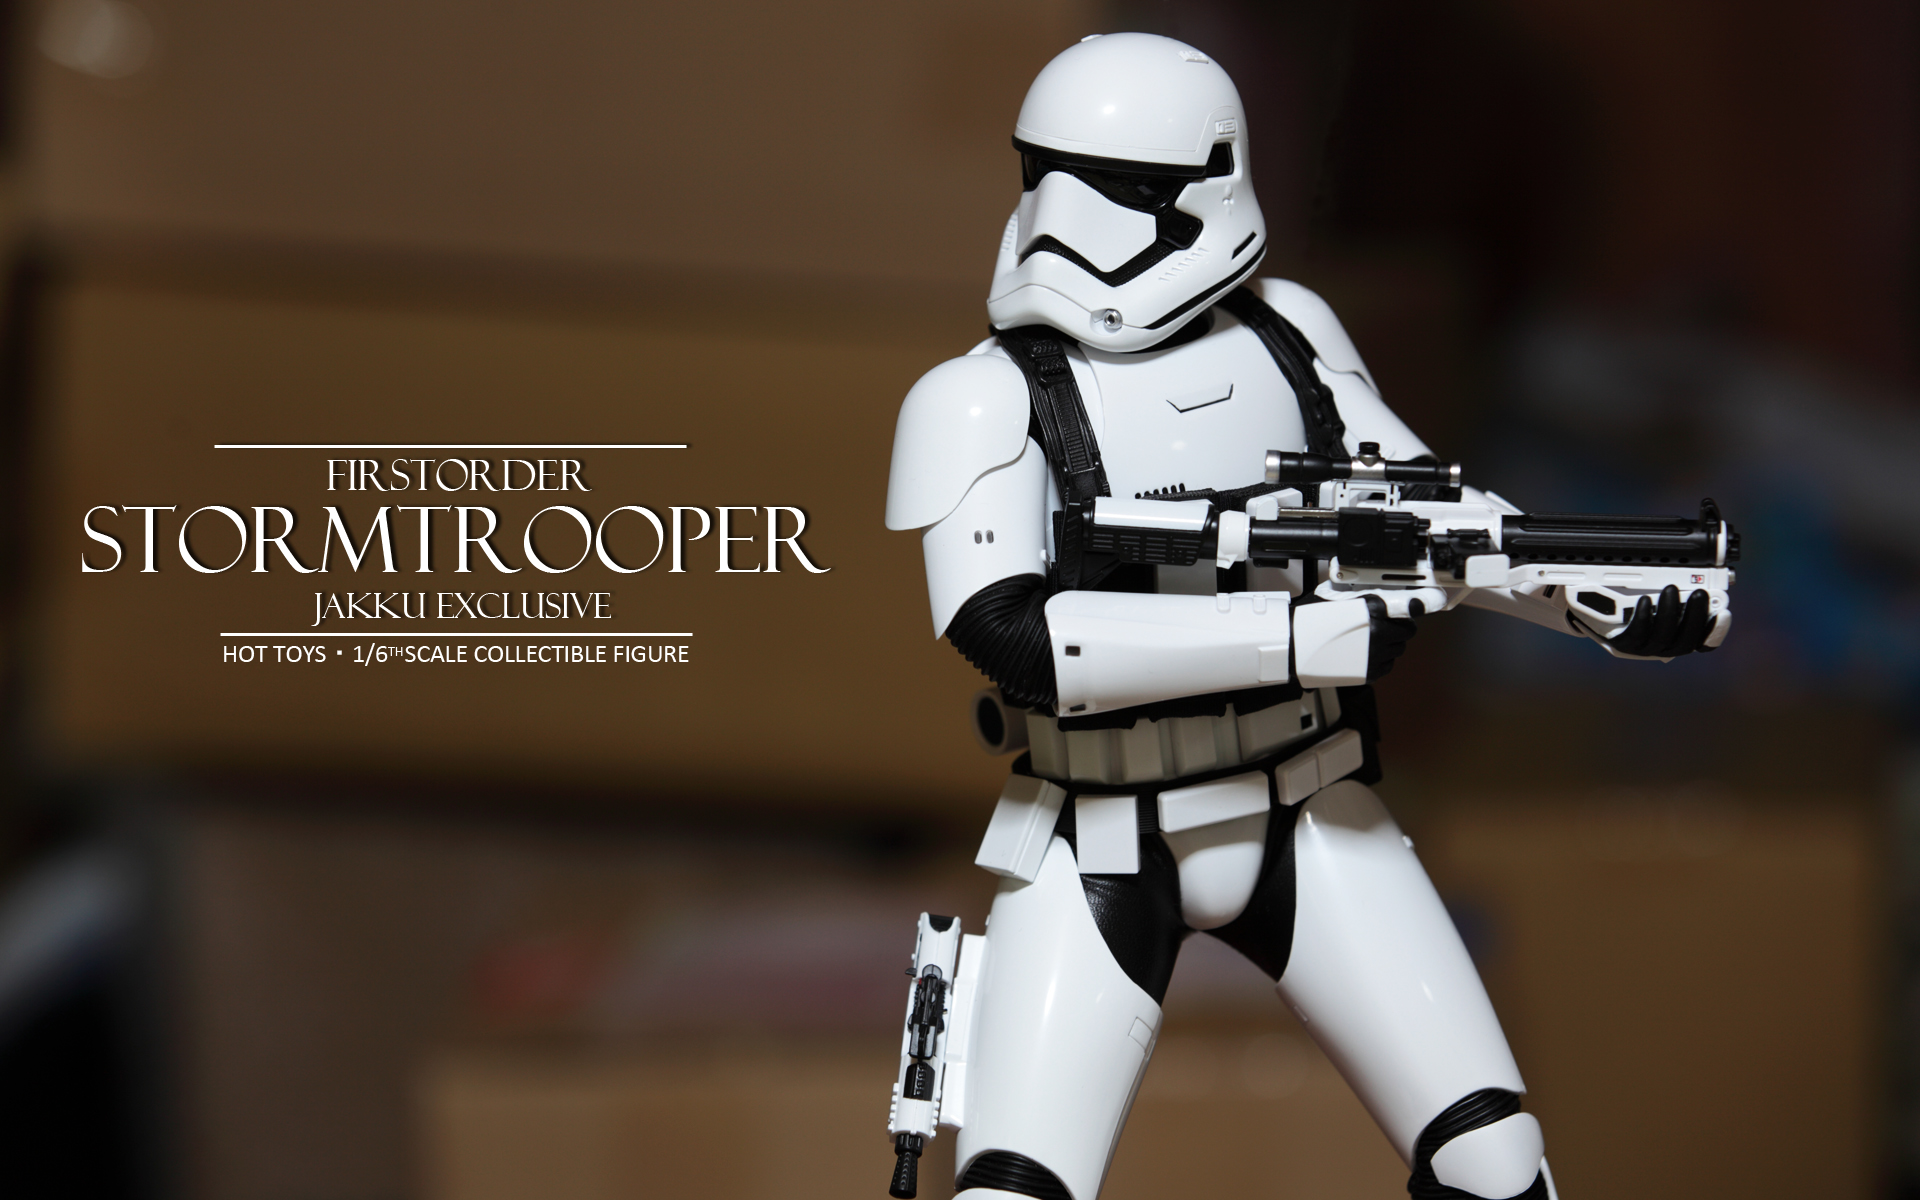 hottoys-star-wars-the-force-awakens-first-order-stormtrooper-jakku-picture04